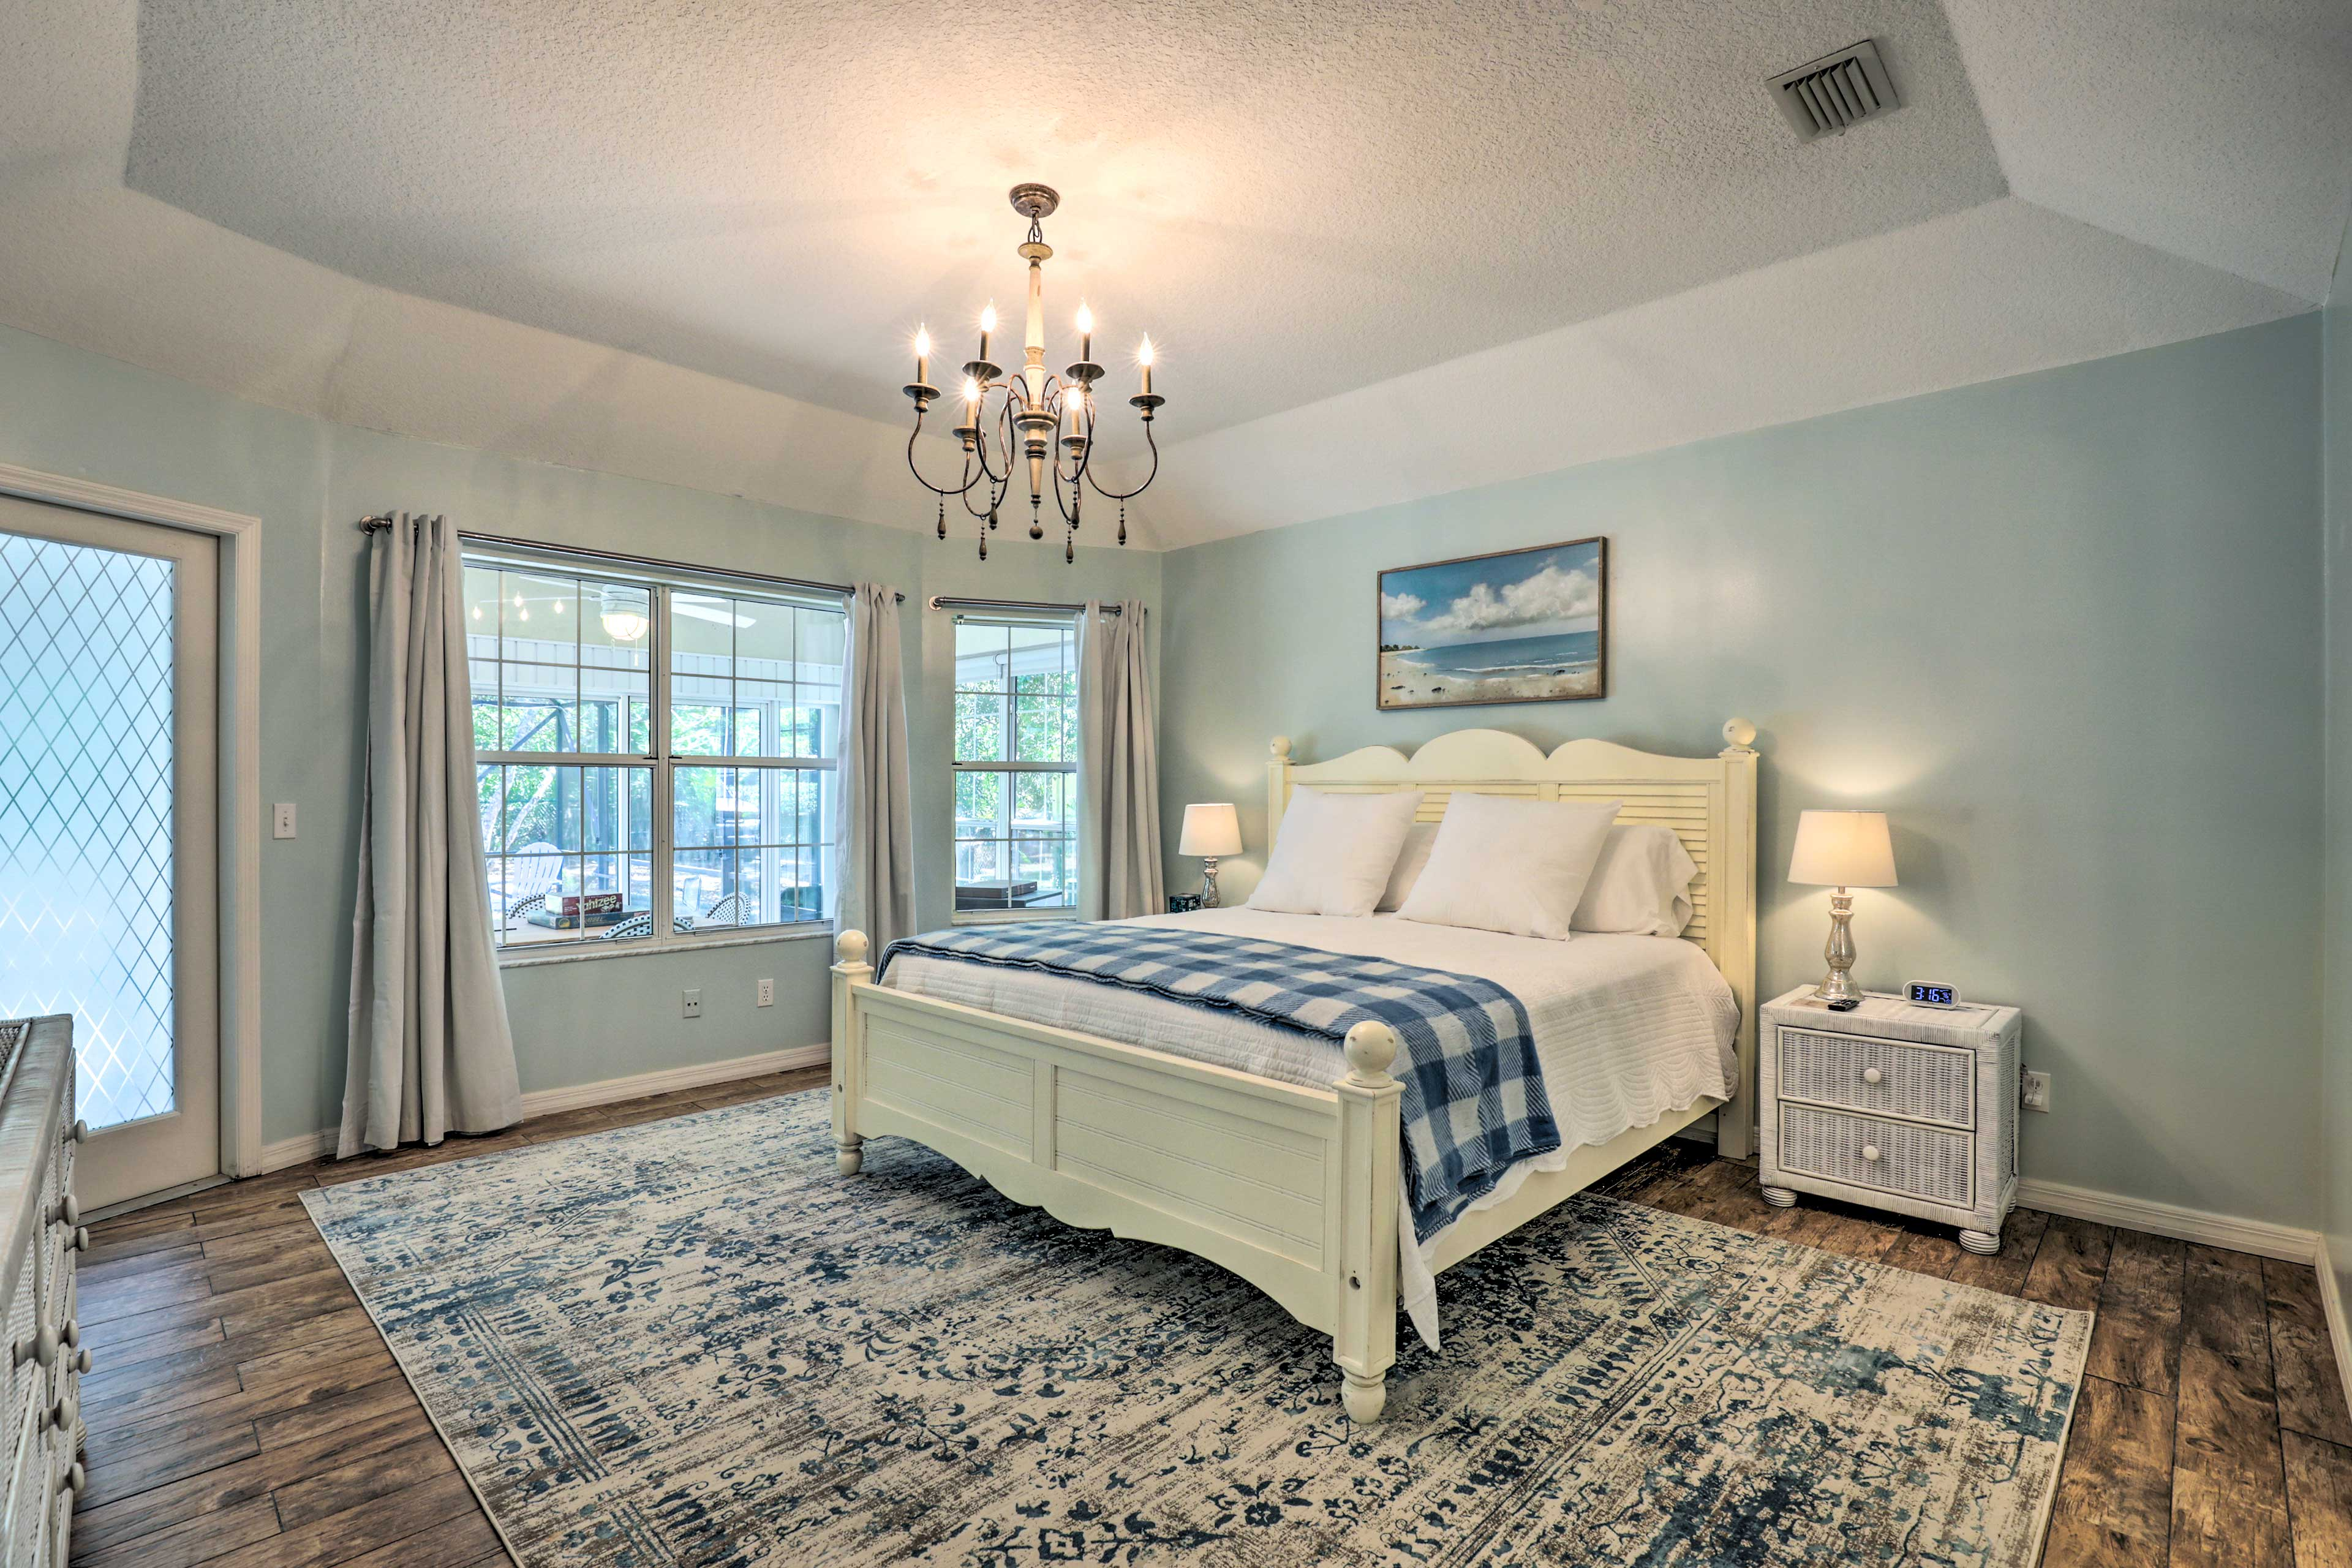 The master bedroom is calling your name!